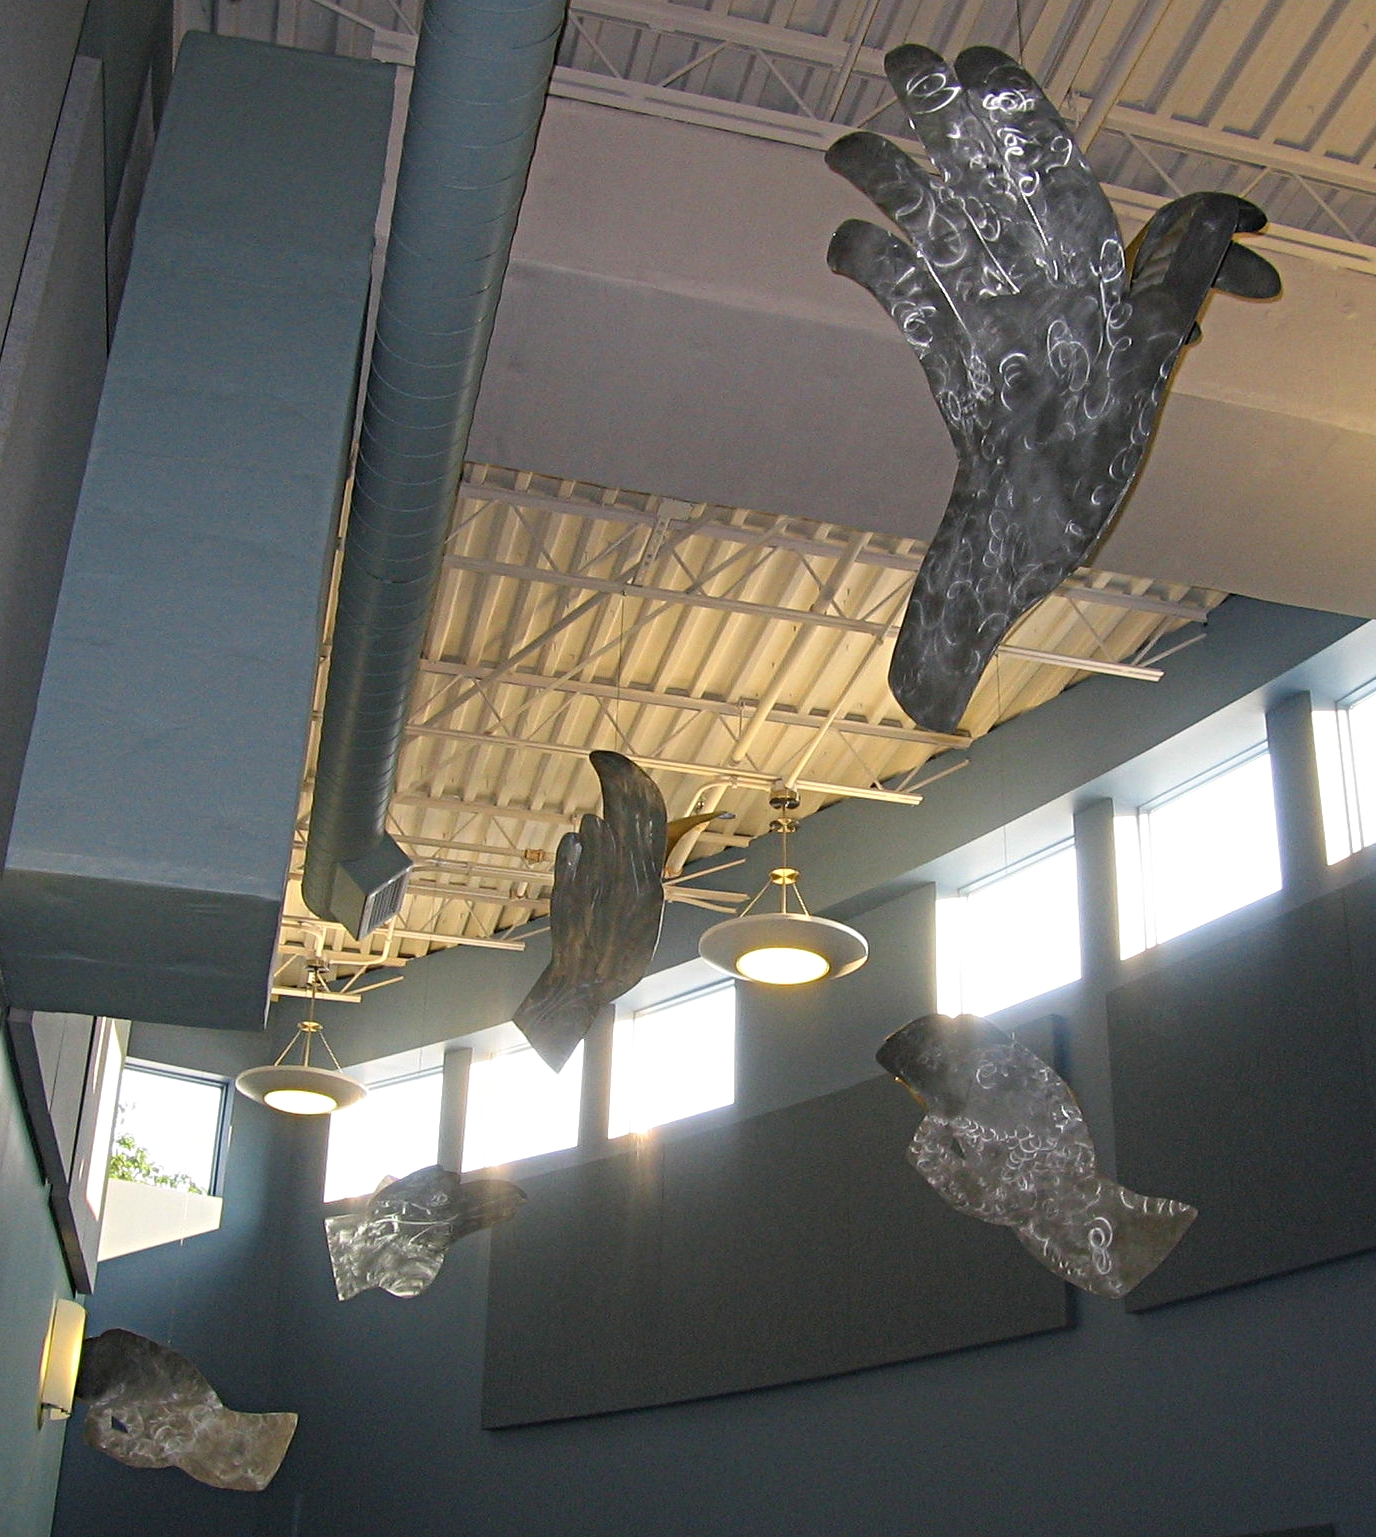 Soaring - Aluminum. Baxter School for the Deaf, Portland Maine, 2008